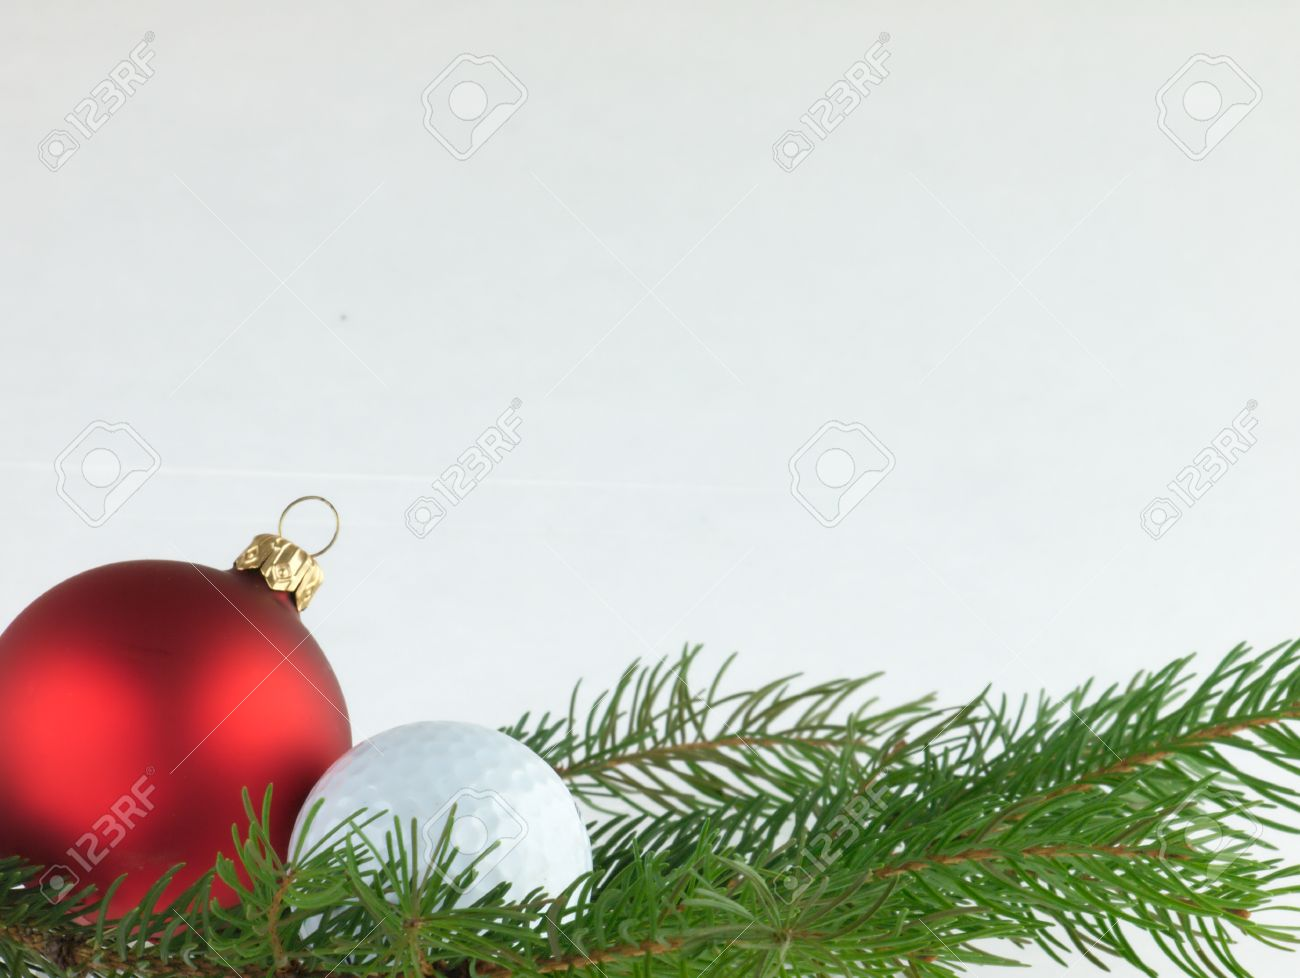 Red Bauble Christmas Tree And Golf Ball With A Sprig Of Pine Trees On Chopping